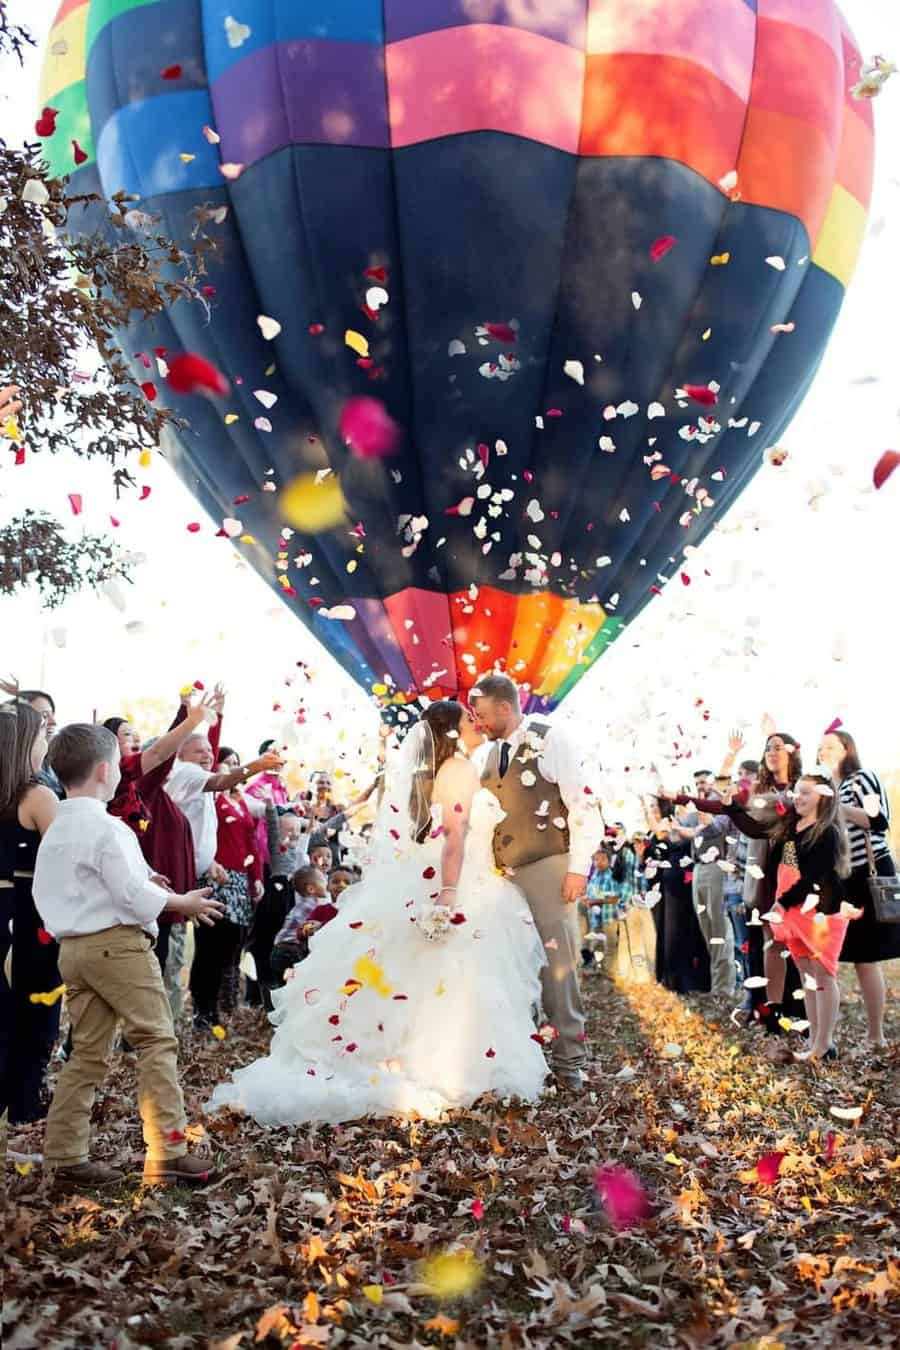 Marriage Ceremony with a hot air balloon ride!